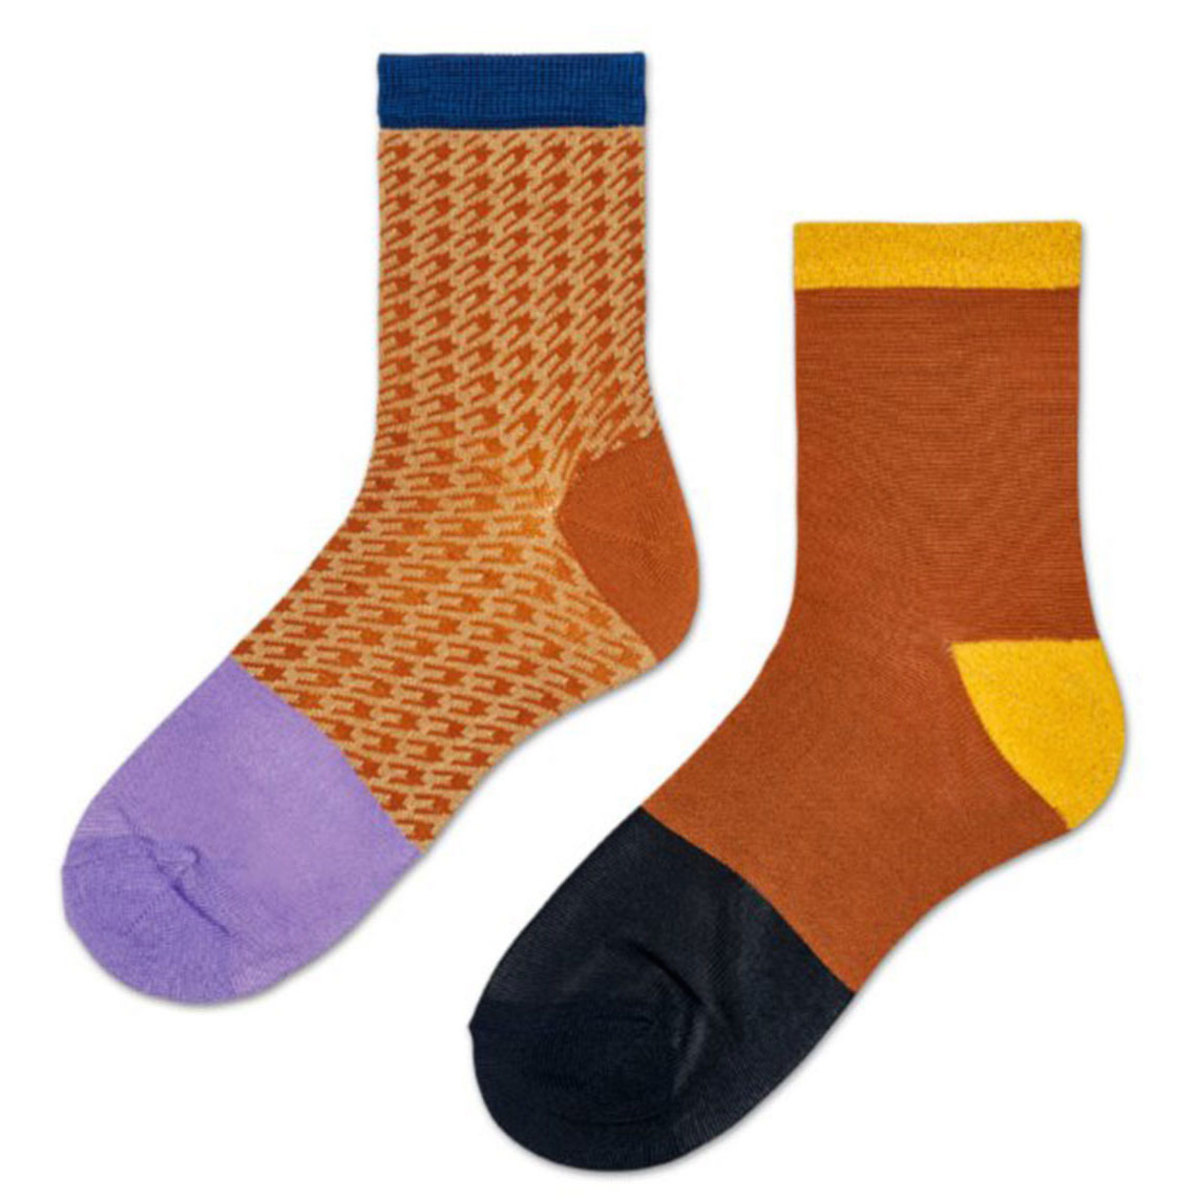 Hysteria by Happy Socks Hanna 2-Pack Colorblock Socks, $34, available here.